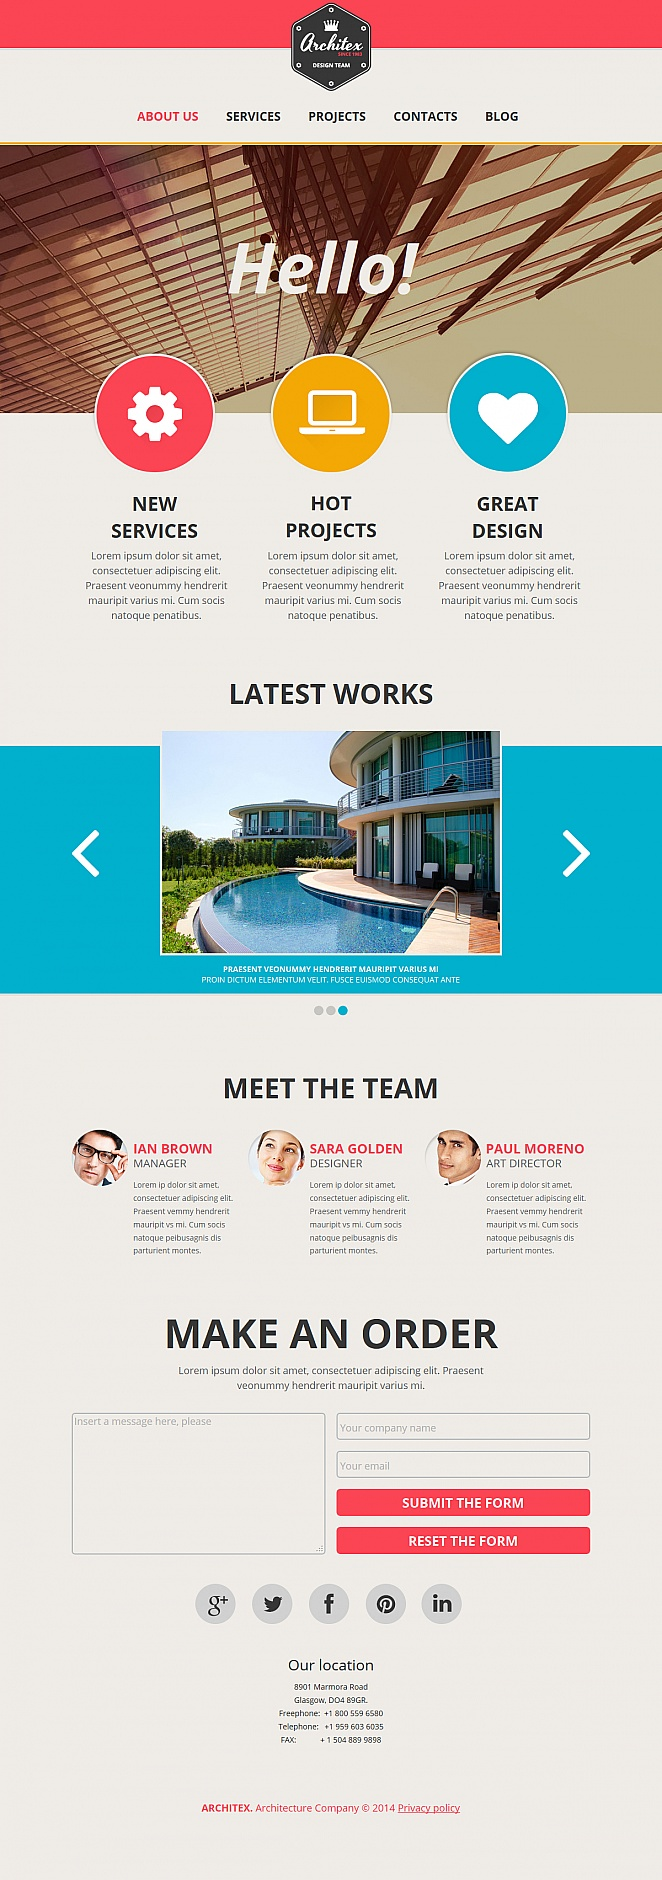 Flat Website Template with Photo Gallery for Architects and Designers - image